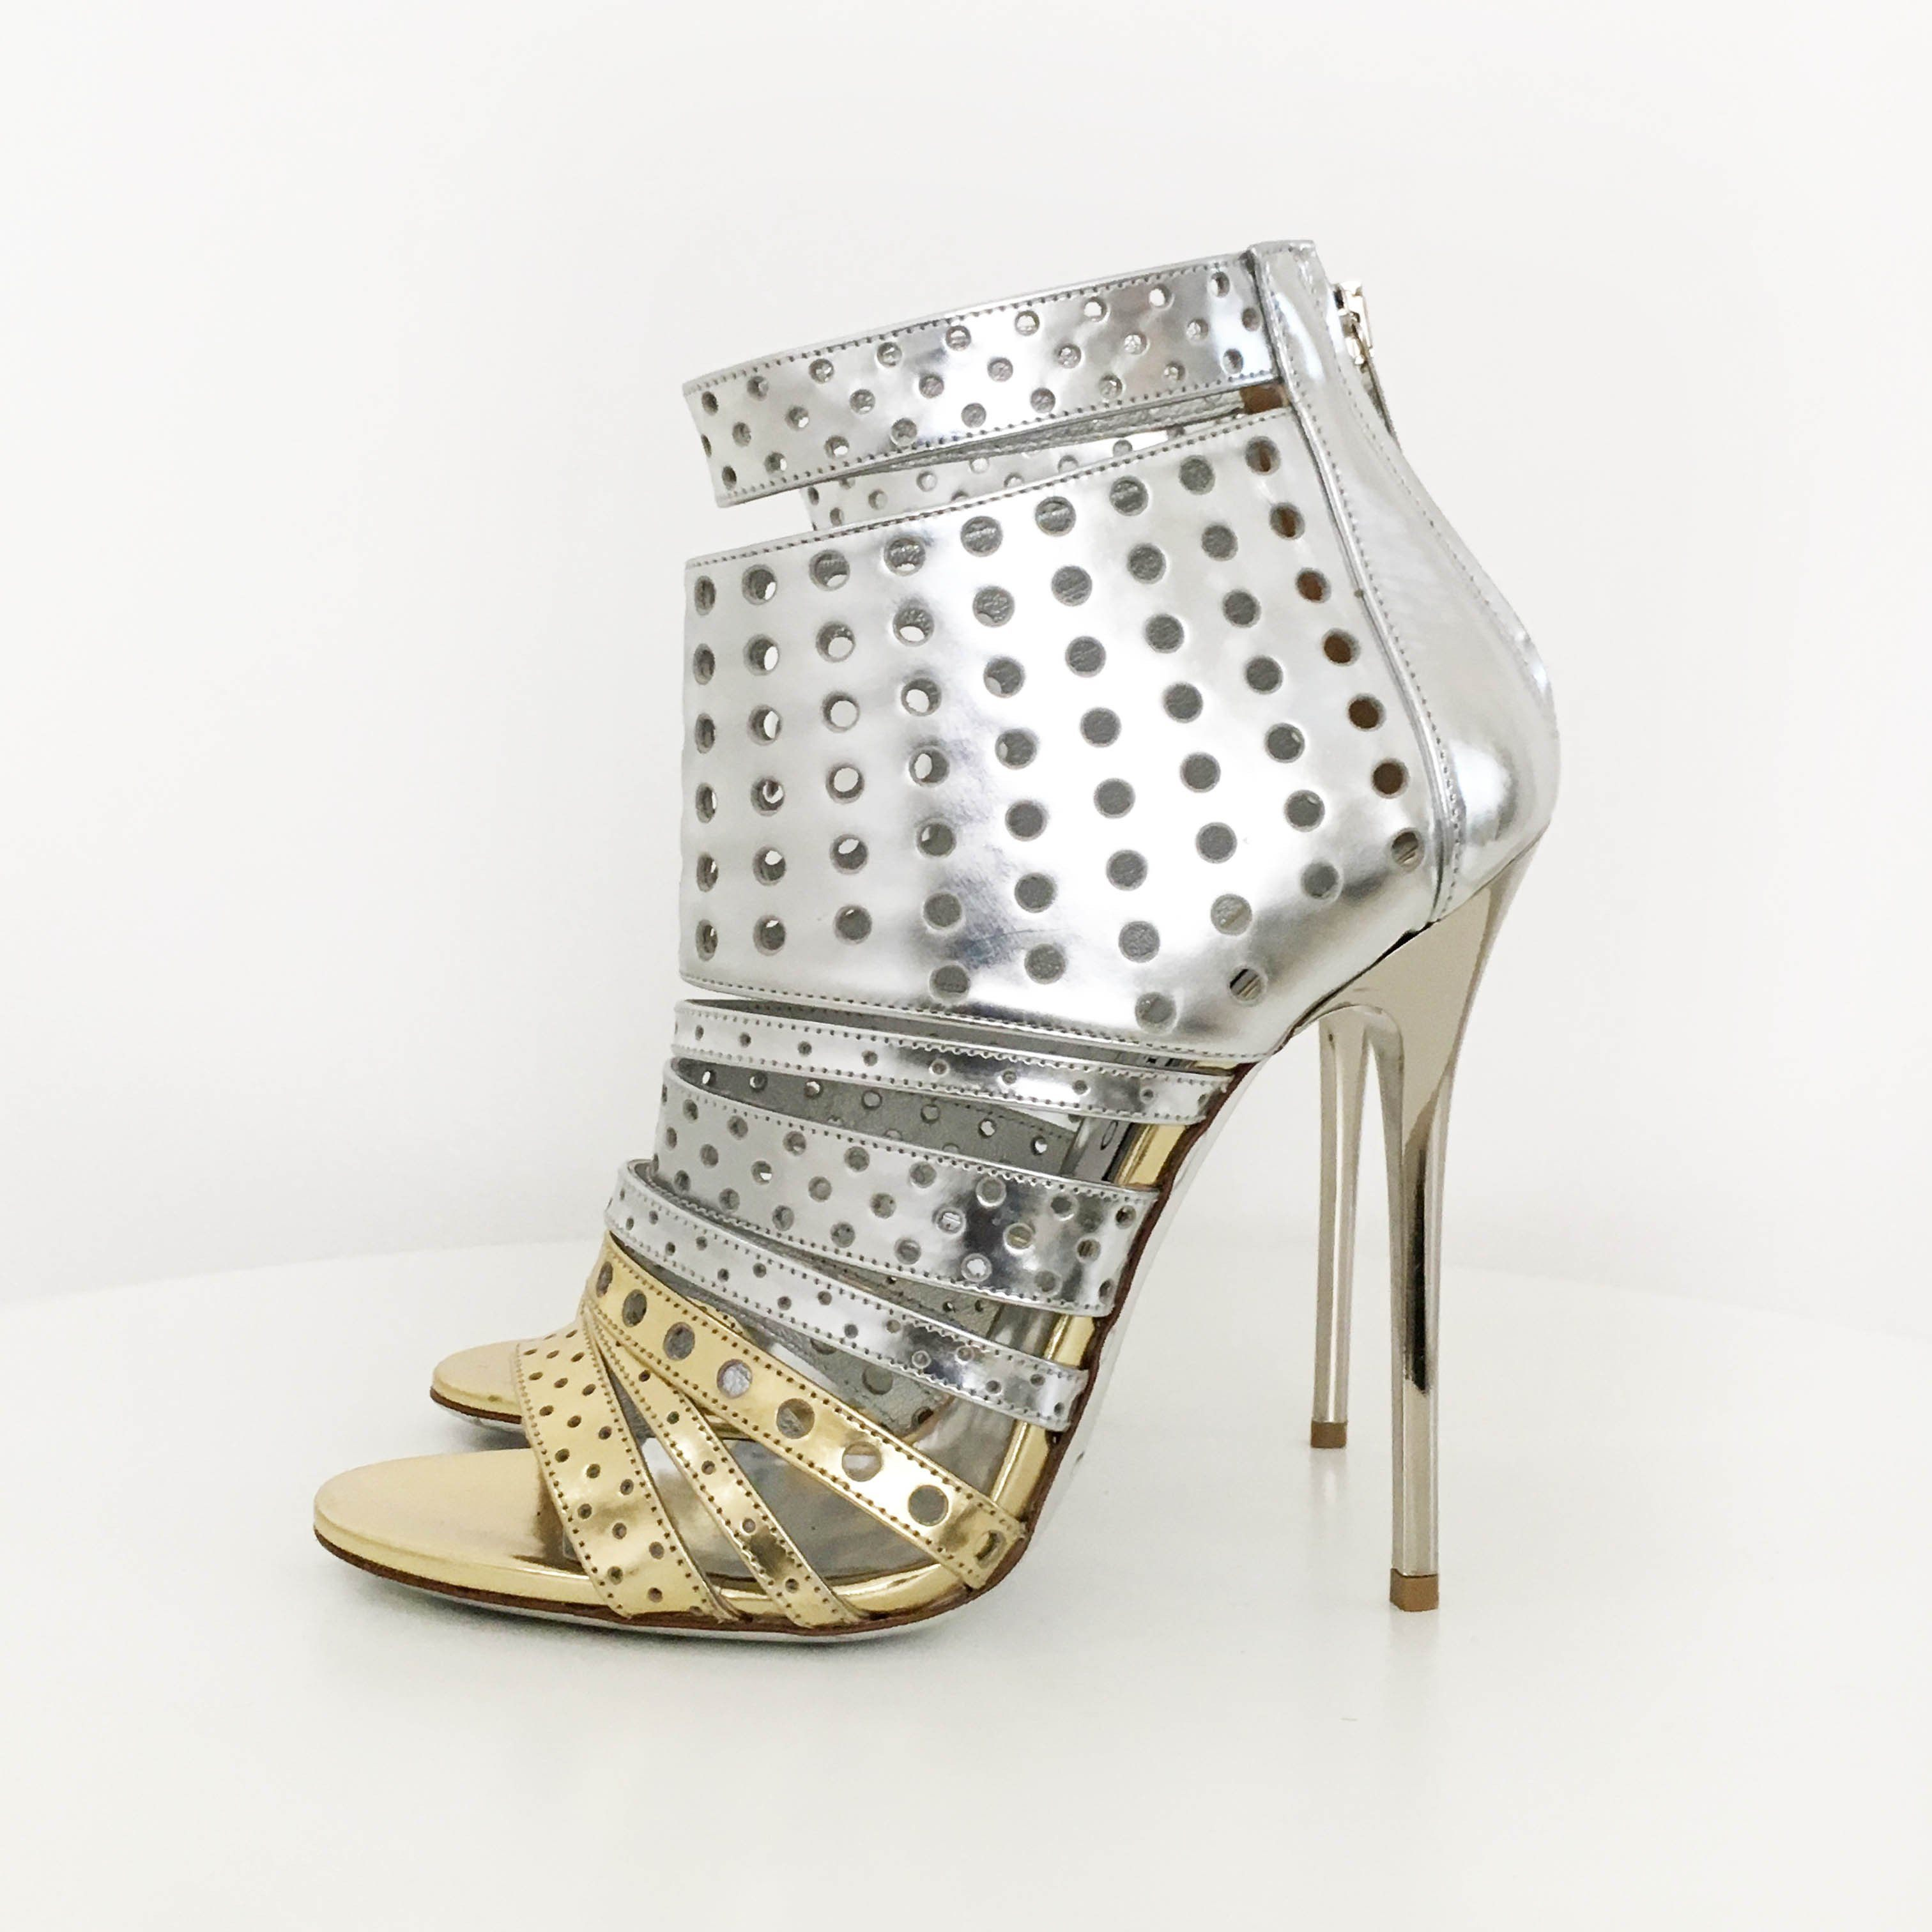 Jimmy Choo Malika Perforated Sandal Bootie Silver/Gold